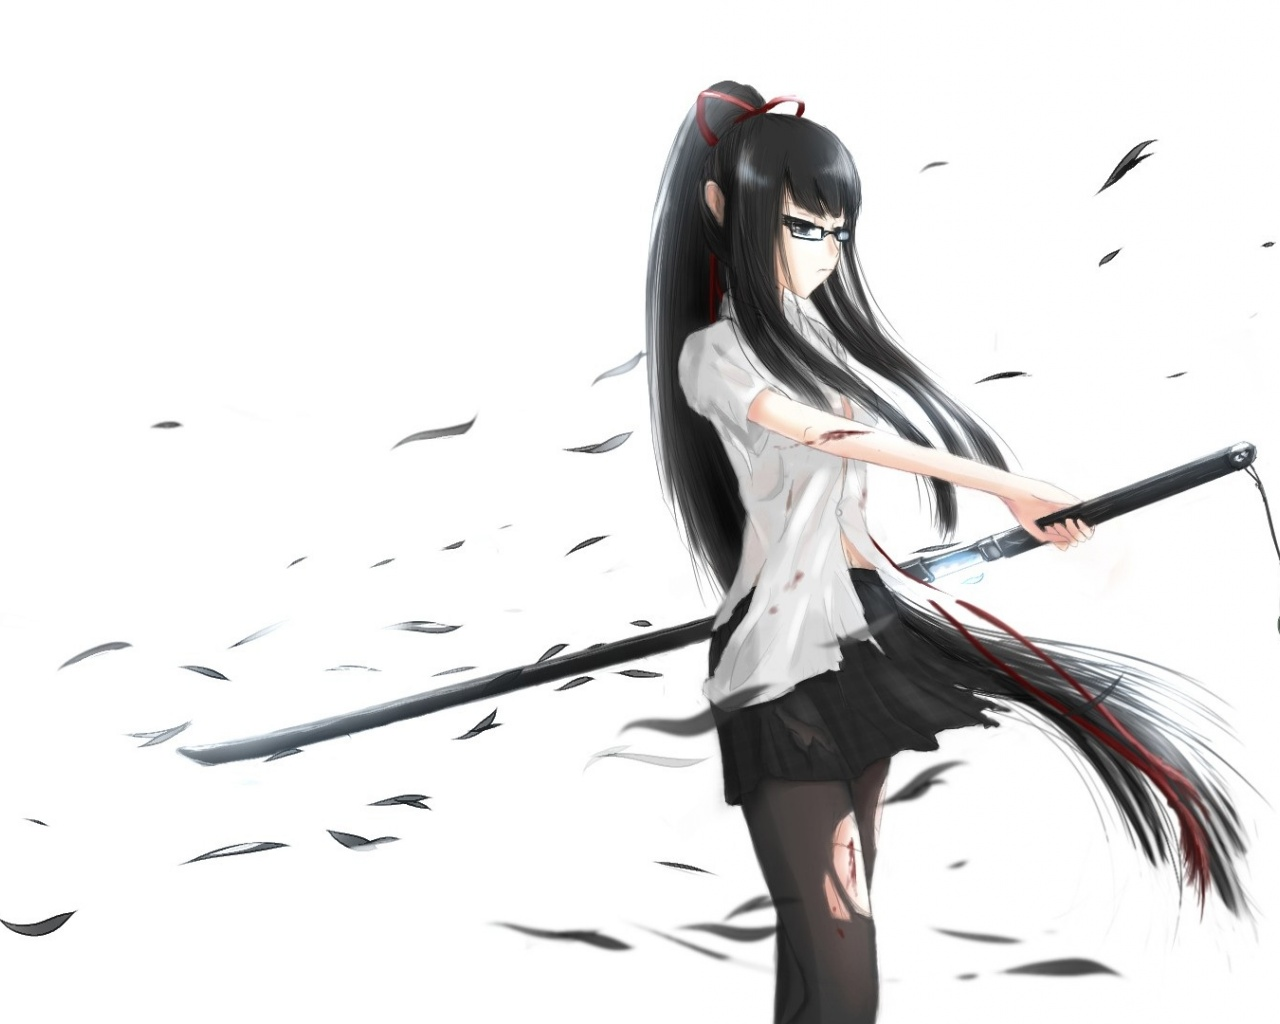 Free Anime Girls Pic Girl In Long Black Hair And Katana Sword Cool Facial Expression 1280x1024 Free Wallpaper Download 1280x1024 Free Wallpaper Download Free Wallpaper World